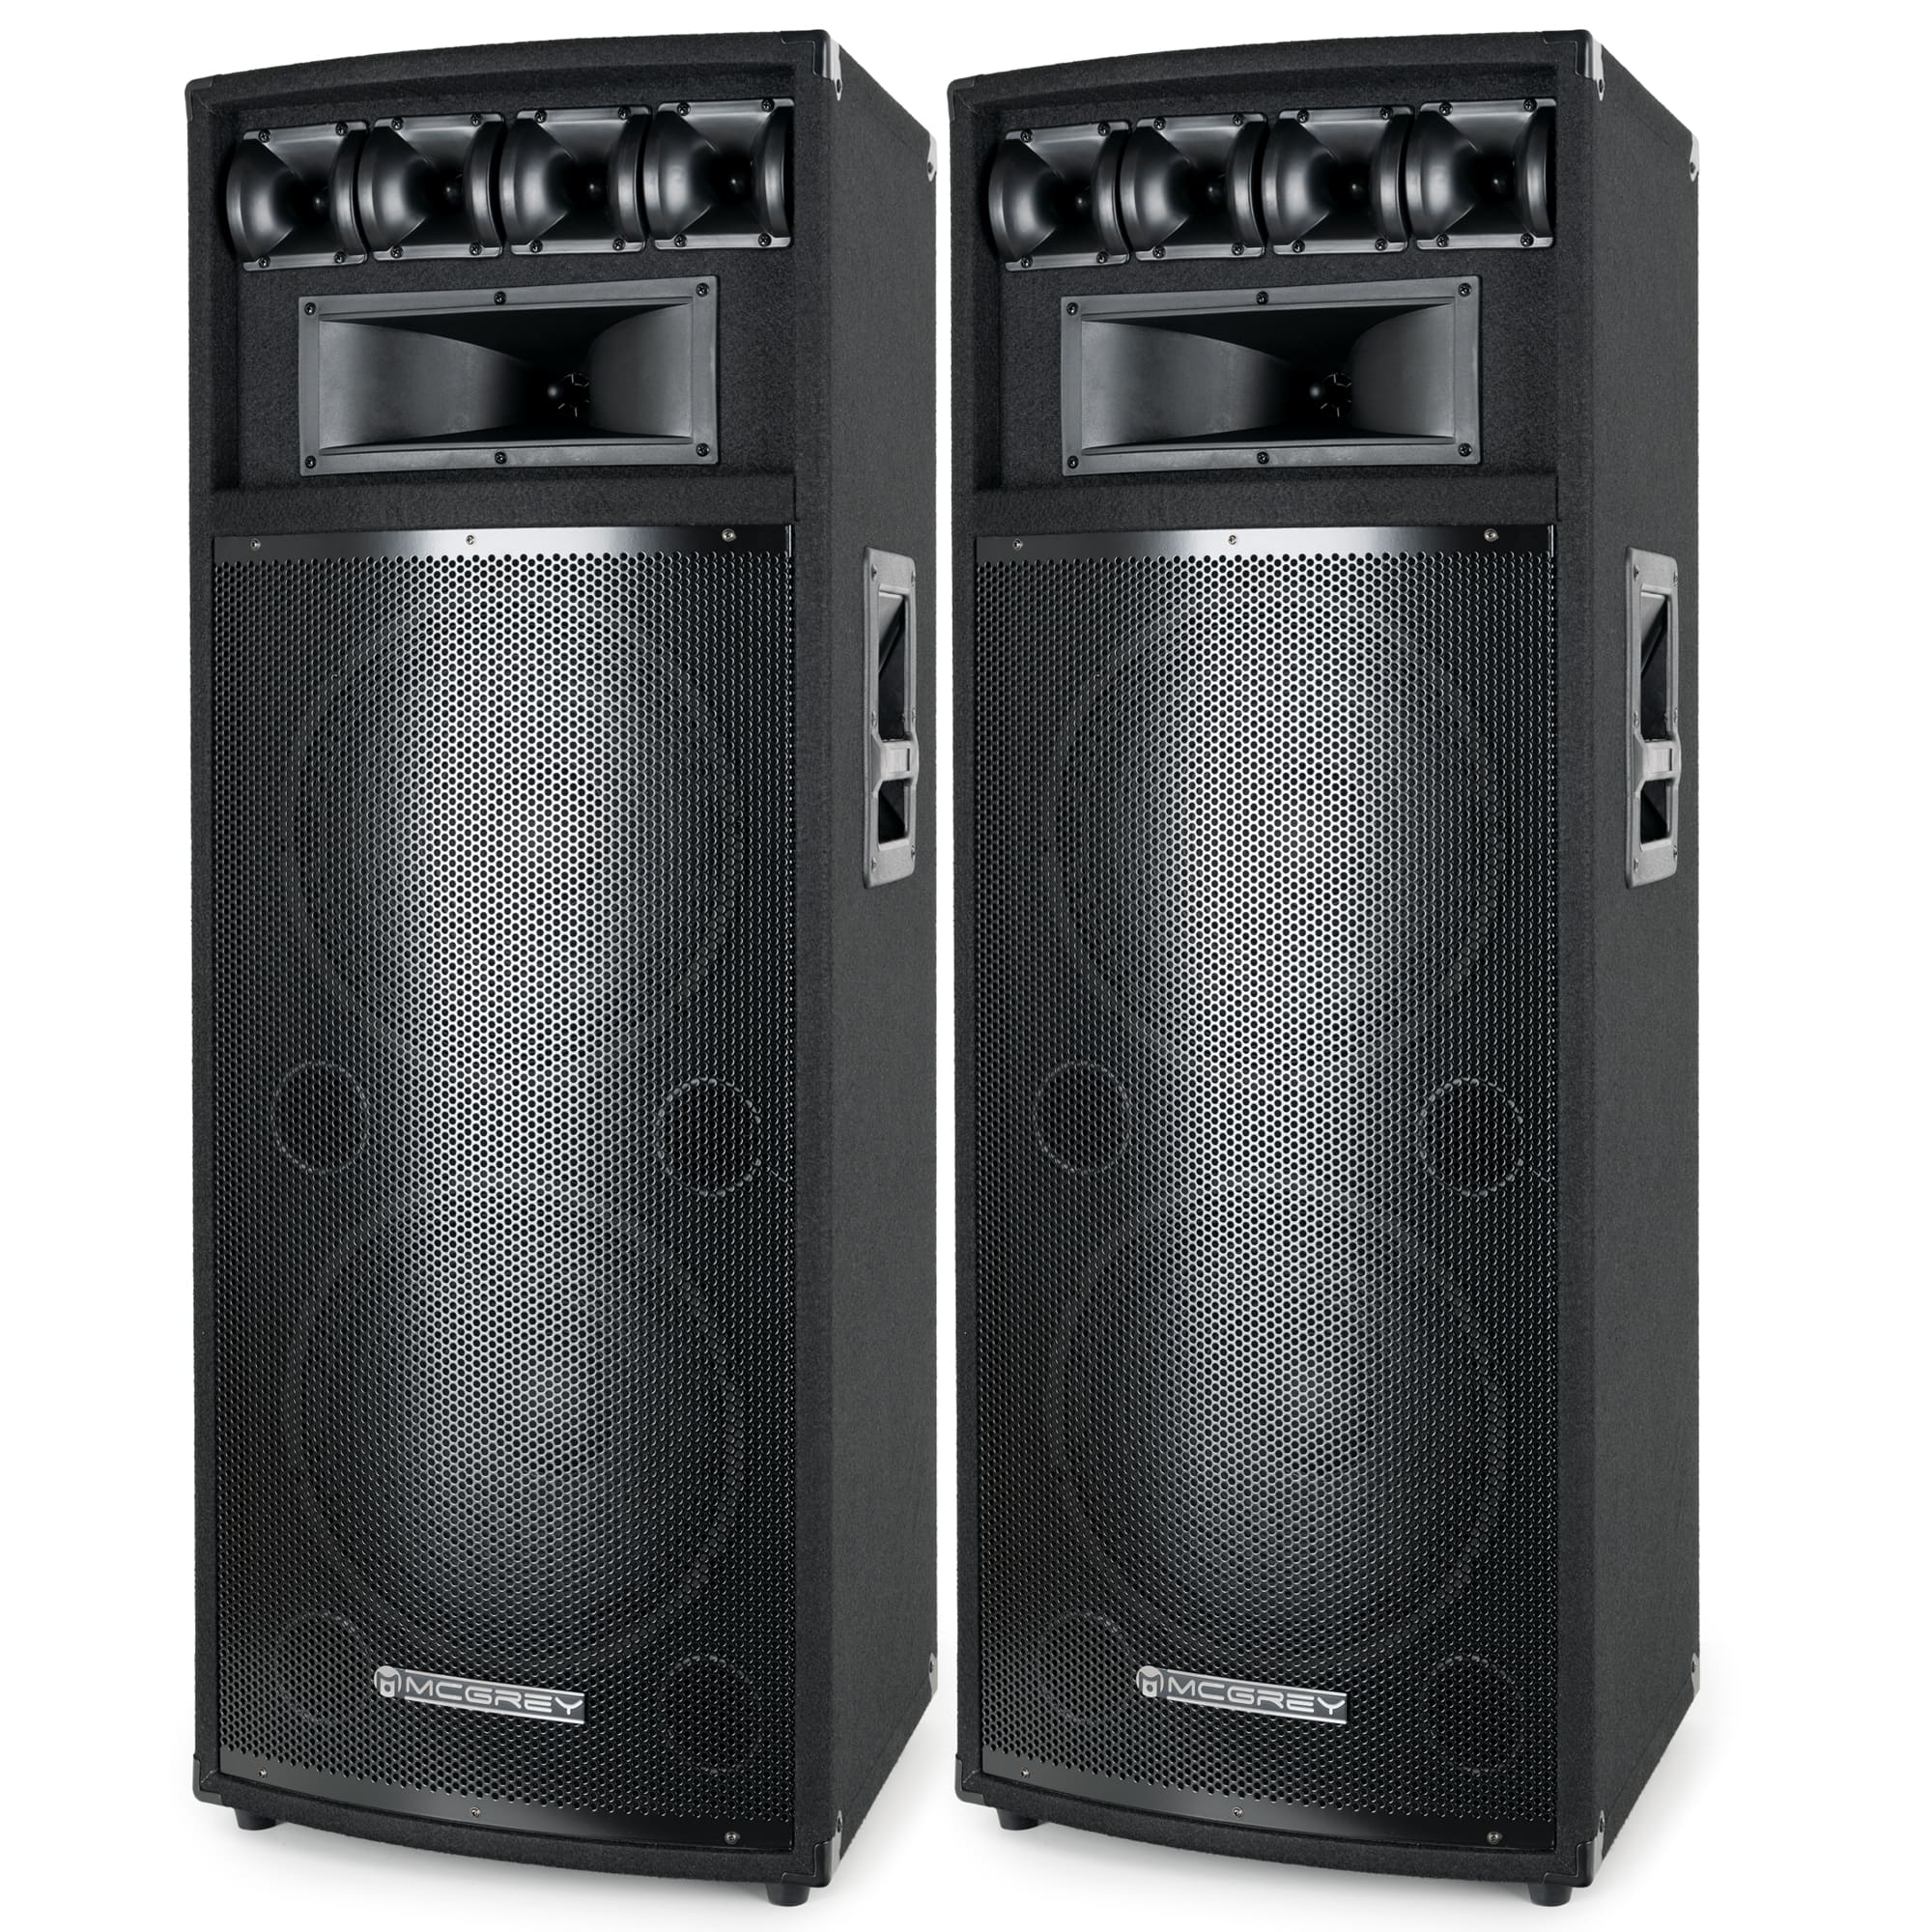 2x enceinte dj pa haut parleur 12 30cm sono disco caisson de basses 1600w ebay. Black Bedroom Furniture Sets. Home Design Ideas